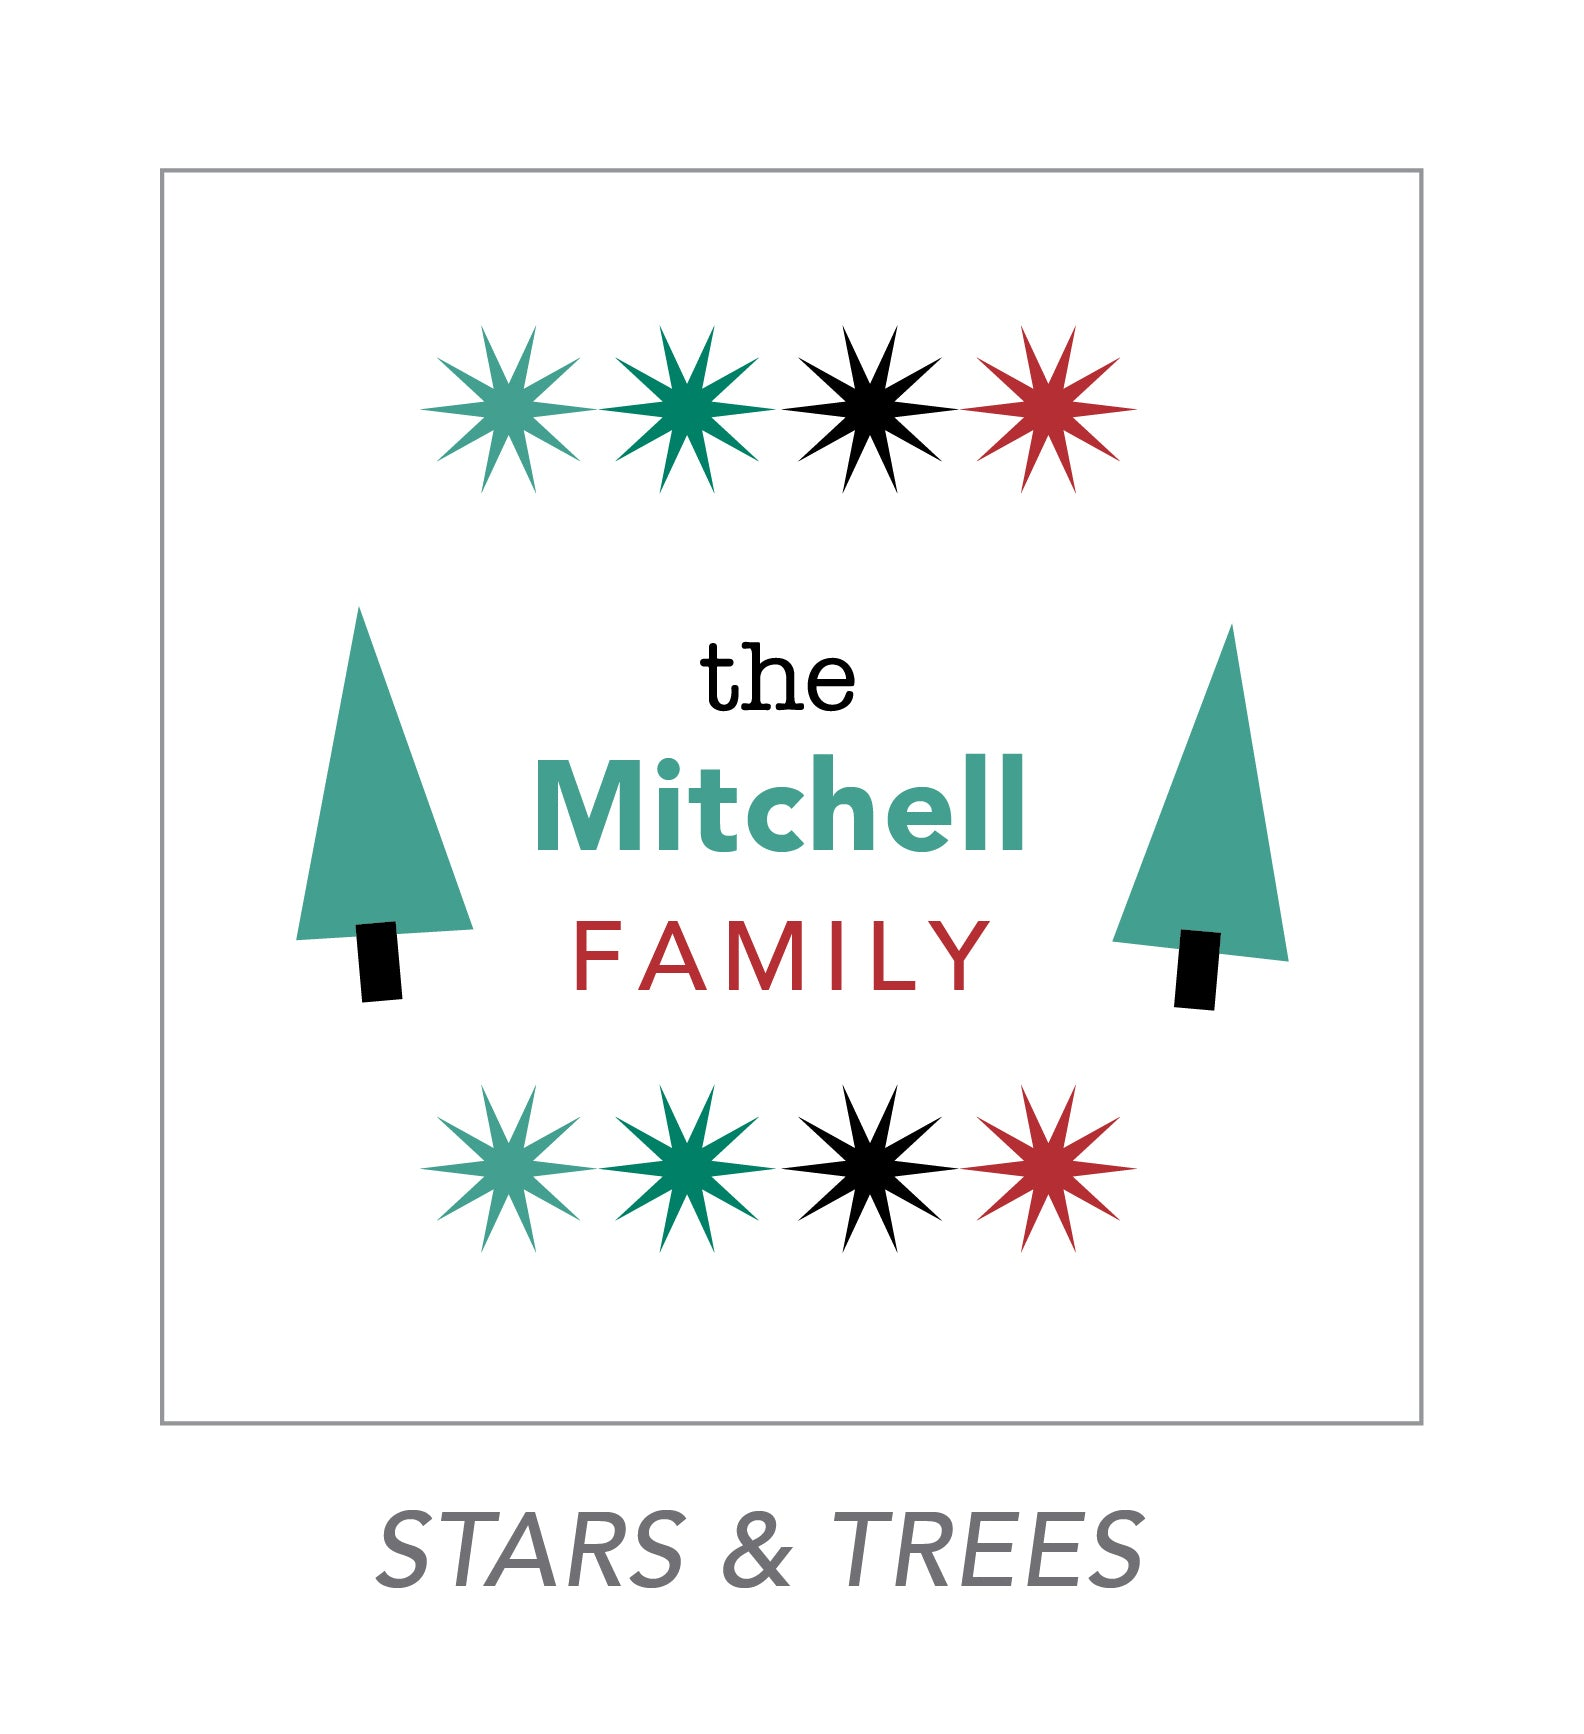 christmas stickers (stars & trees)